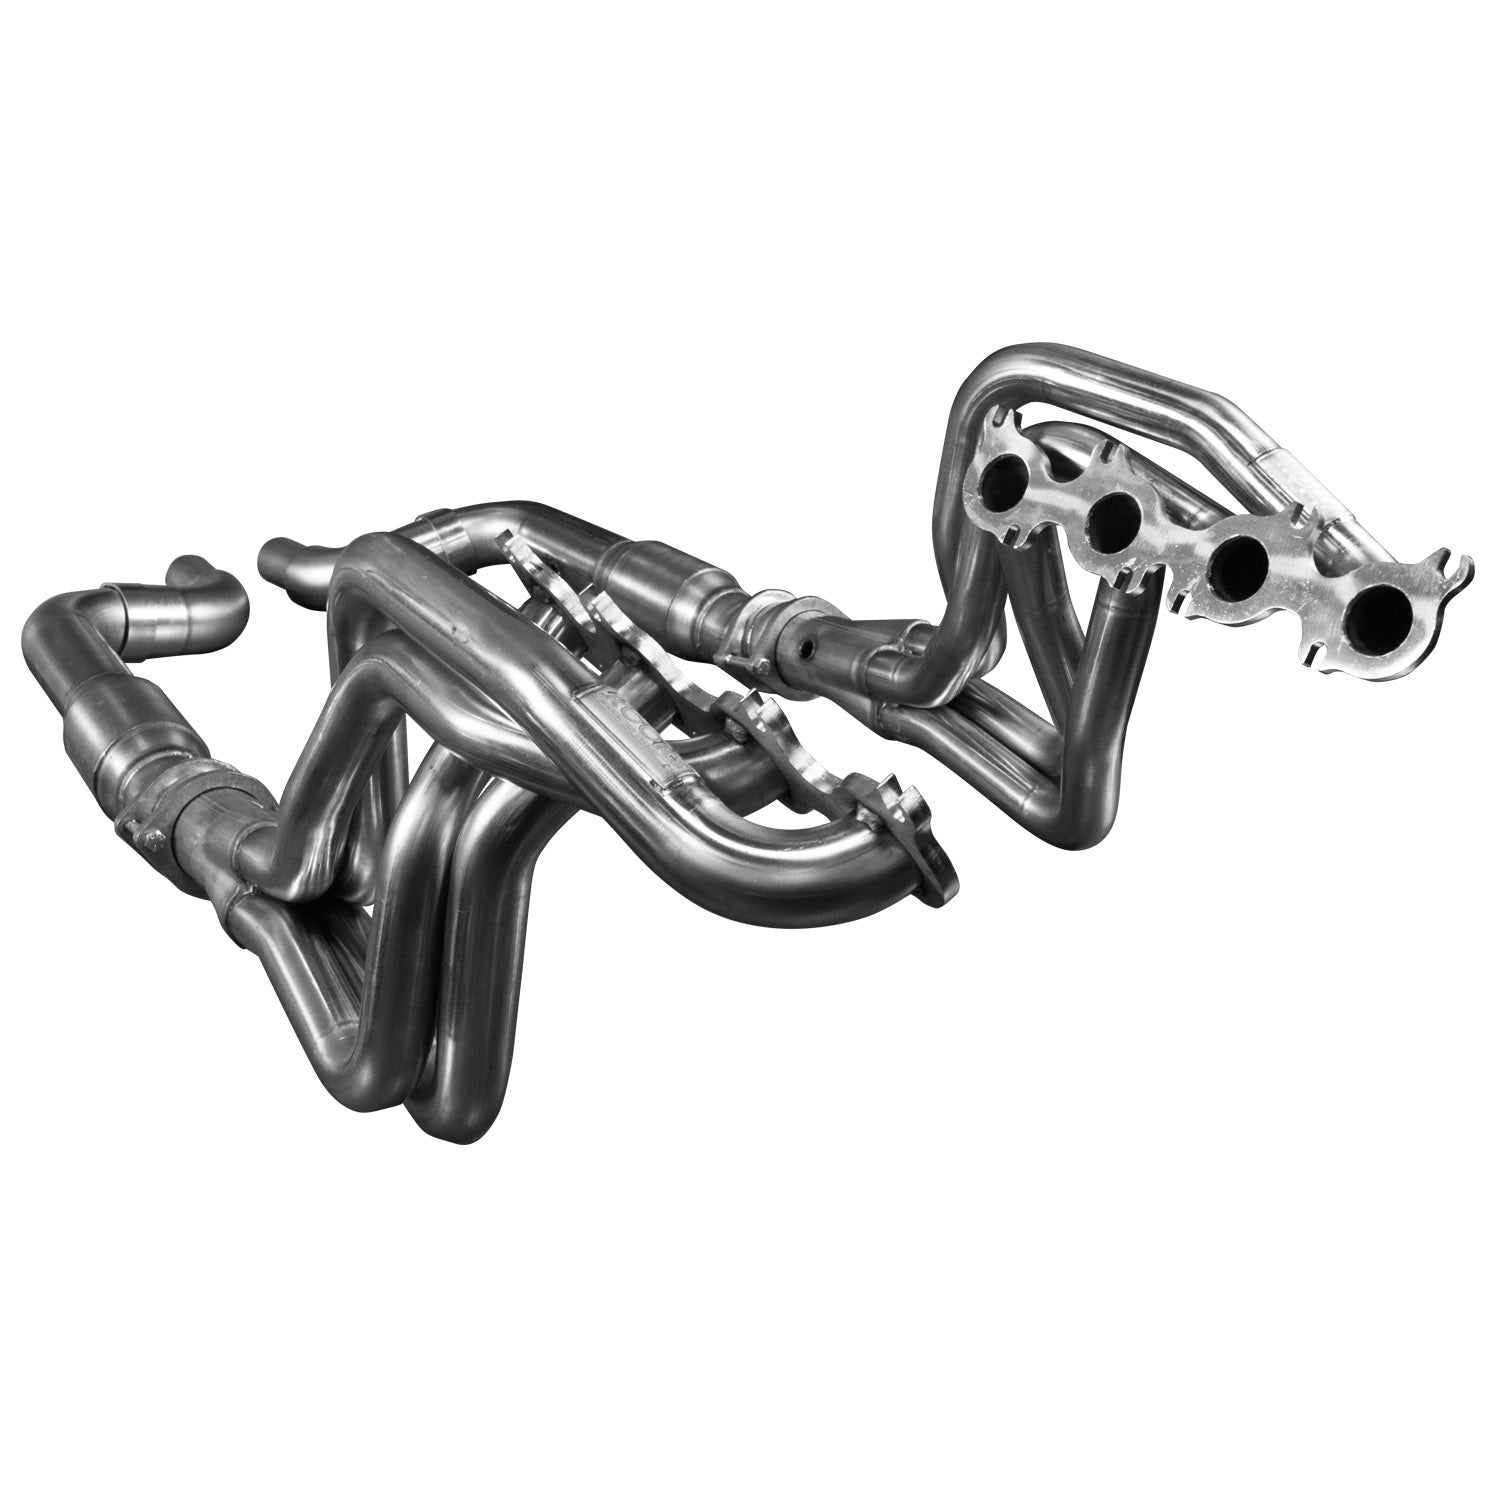 "2015 + Mustang GT 5.0L 1 7/8"" x 3"" Stainless Steel Long Tube Header w/ GREEN Catted Connection Pipe"